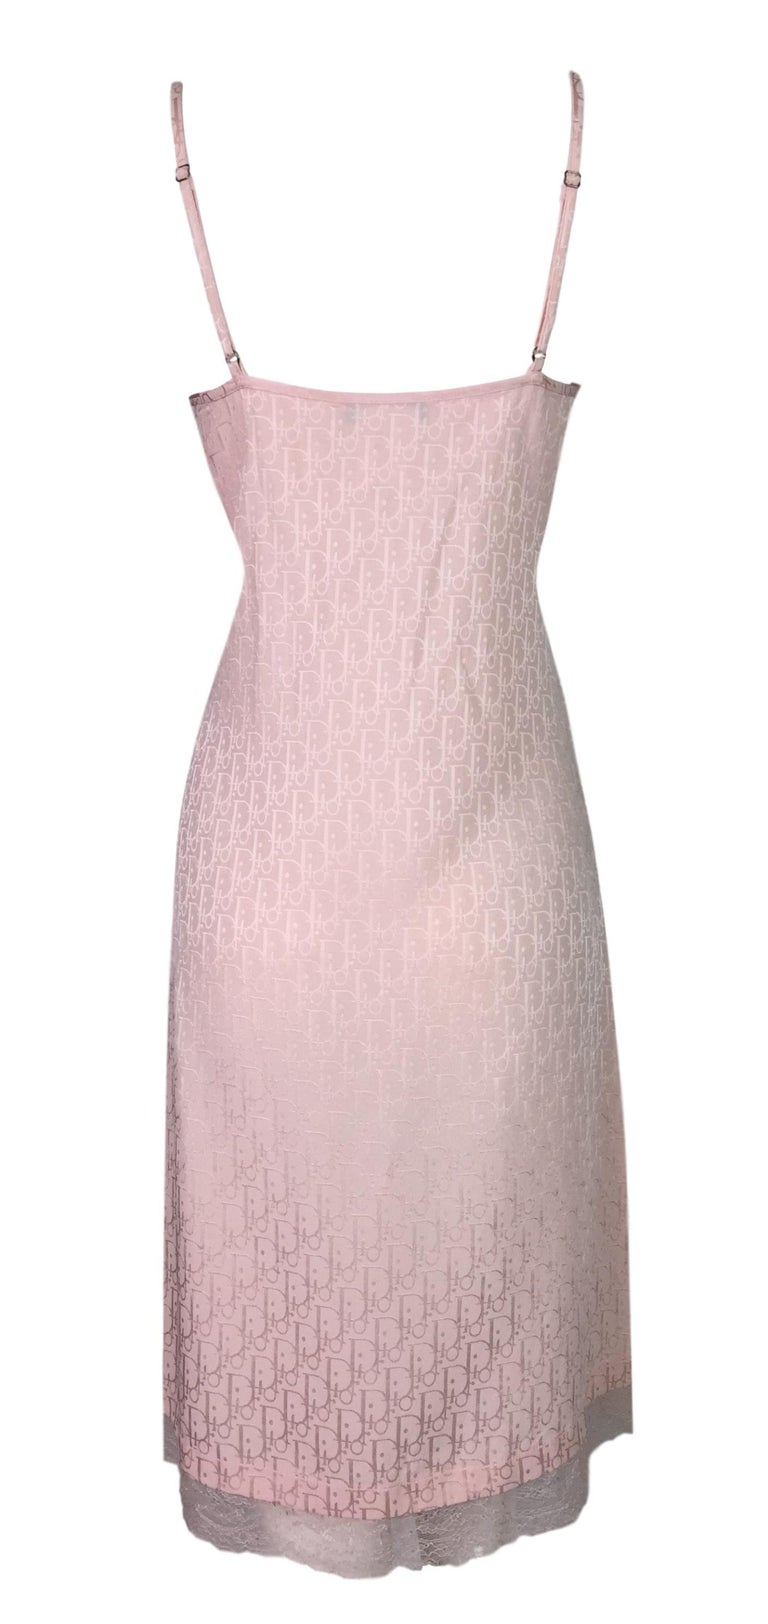 DESIGNER: S/S 2000 Christian Dior  Please contact for more information and/or photos.  CONDITION: Good- one tiny pin dot stain- please see last photo.   FABRIC: Acetate & Viscose  COUNTRY MADE: Italy  SIZE: 46  MEASUREMENTS; provided as a courtesy